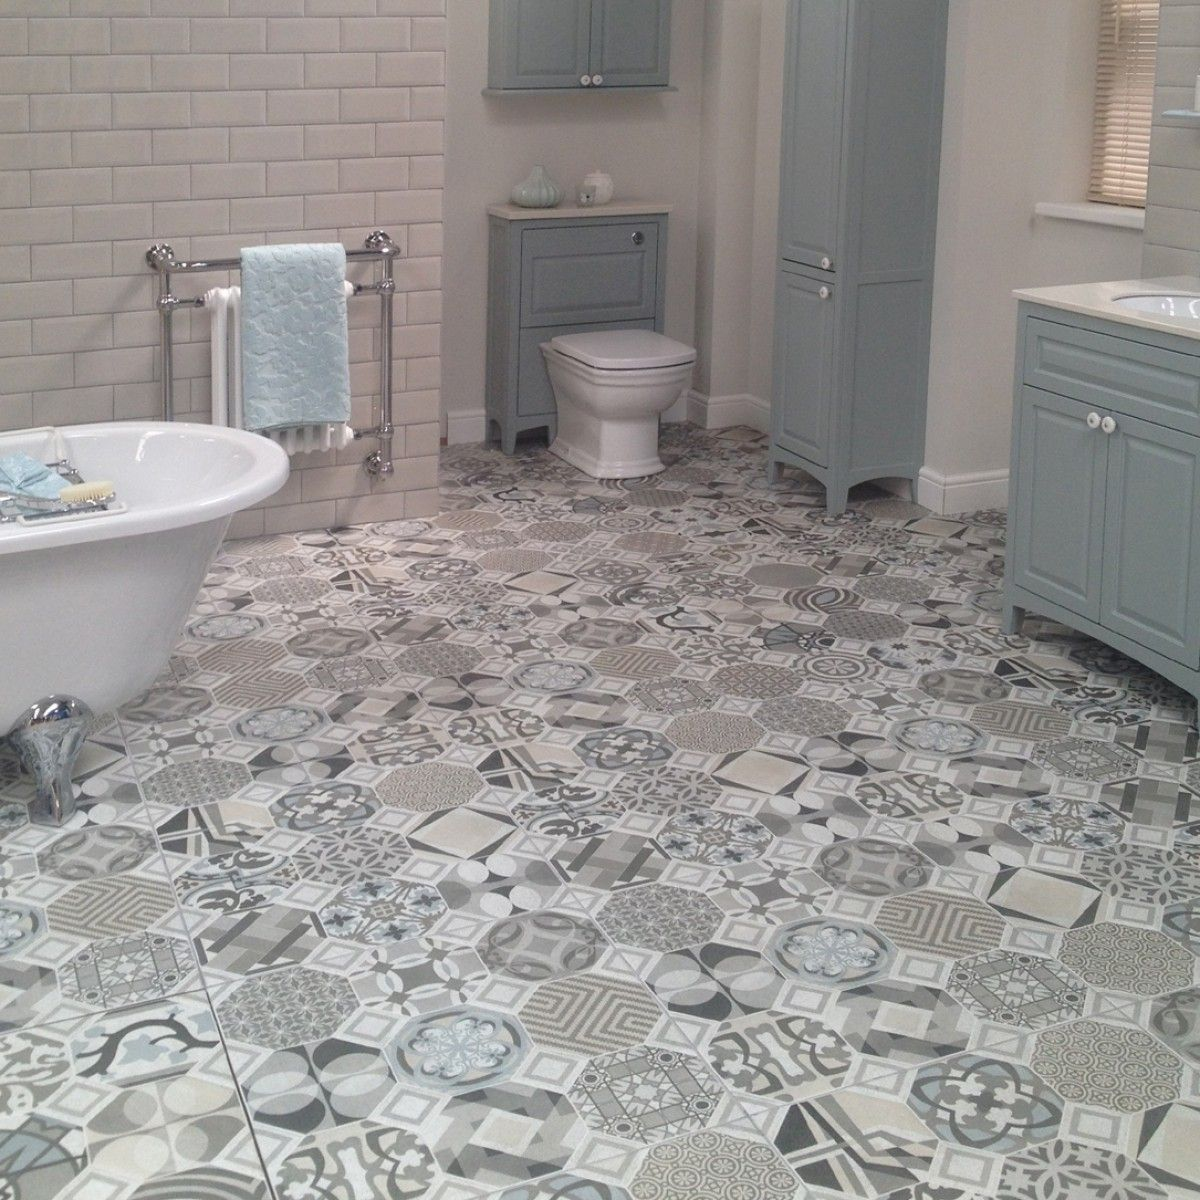 Vintage style floor tiles choice image home flooring design 60x60 flow 600mm x 600mm hallway pinterest bathroom tiling tile flooring marialoaizafo choice image dailygadgetfo Images